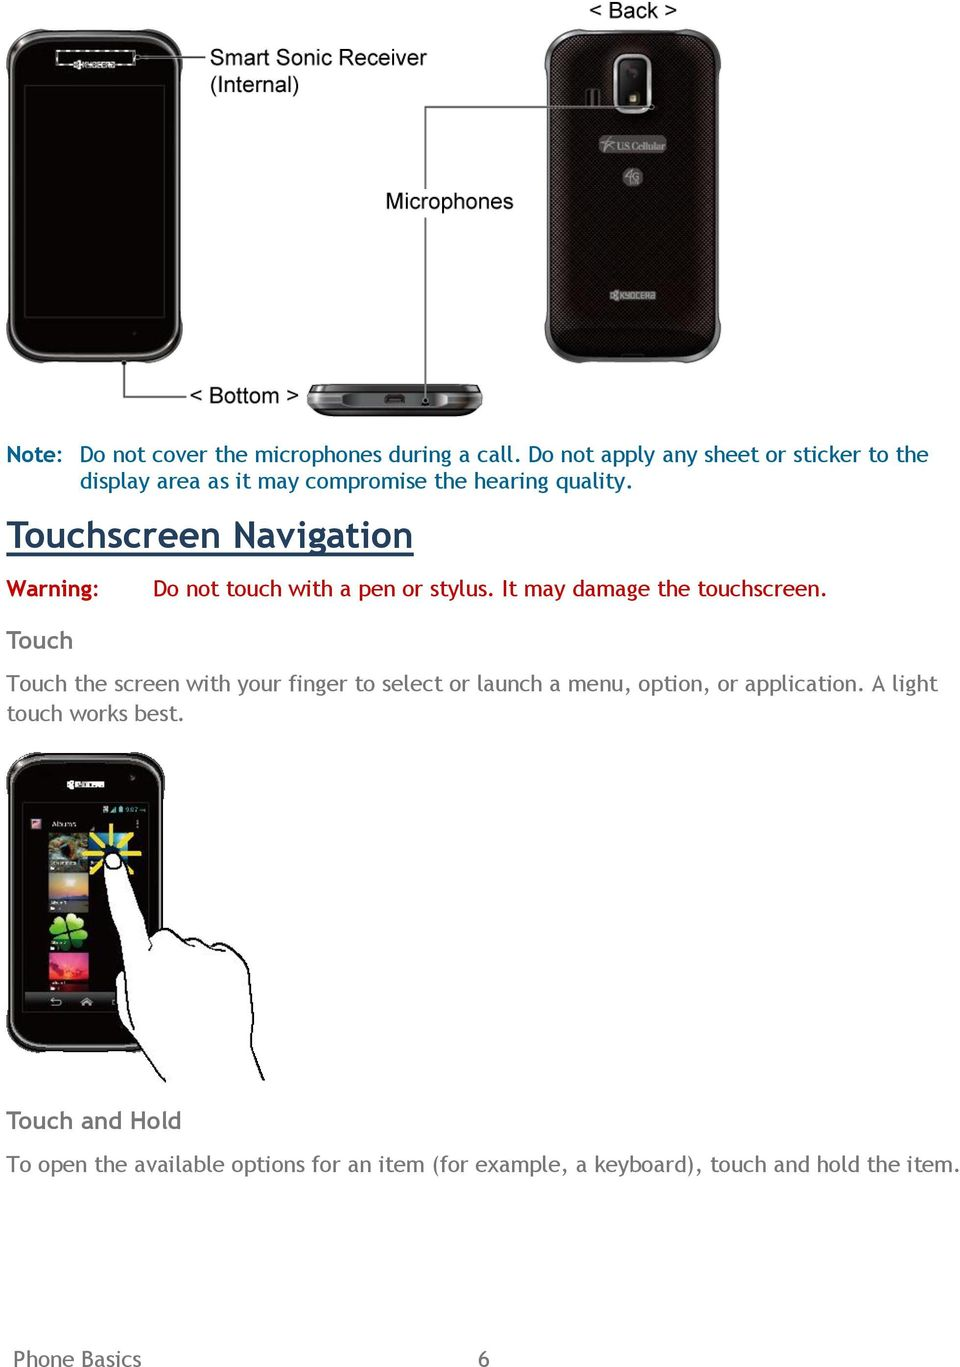 Touchscreen Navigation Warning: Touch Do not touch with a pen or stylus. It may damage the touchscreen.